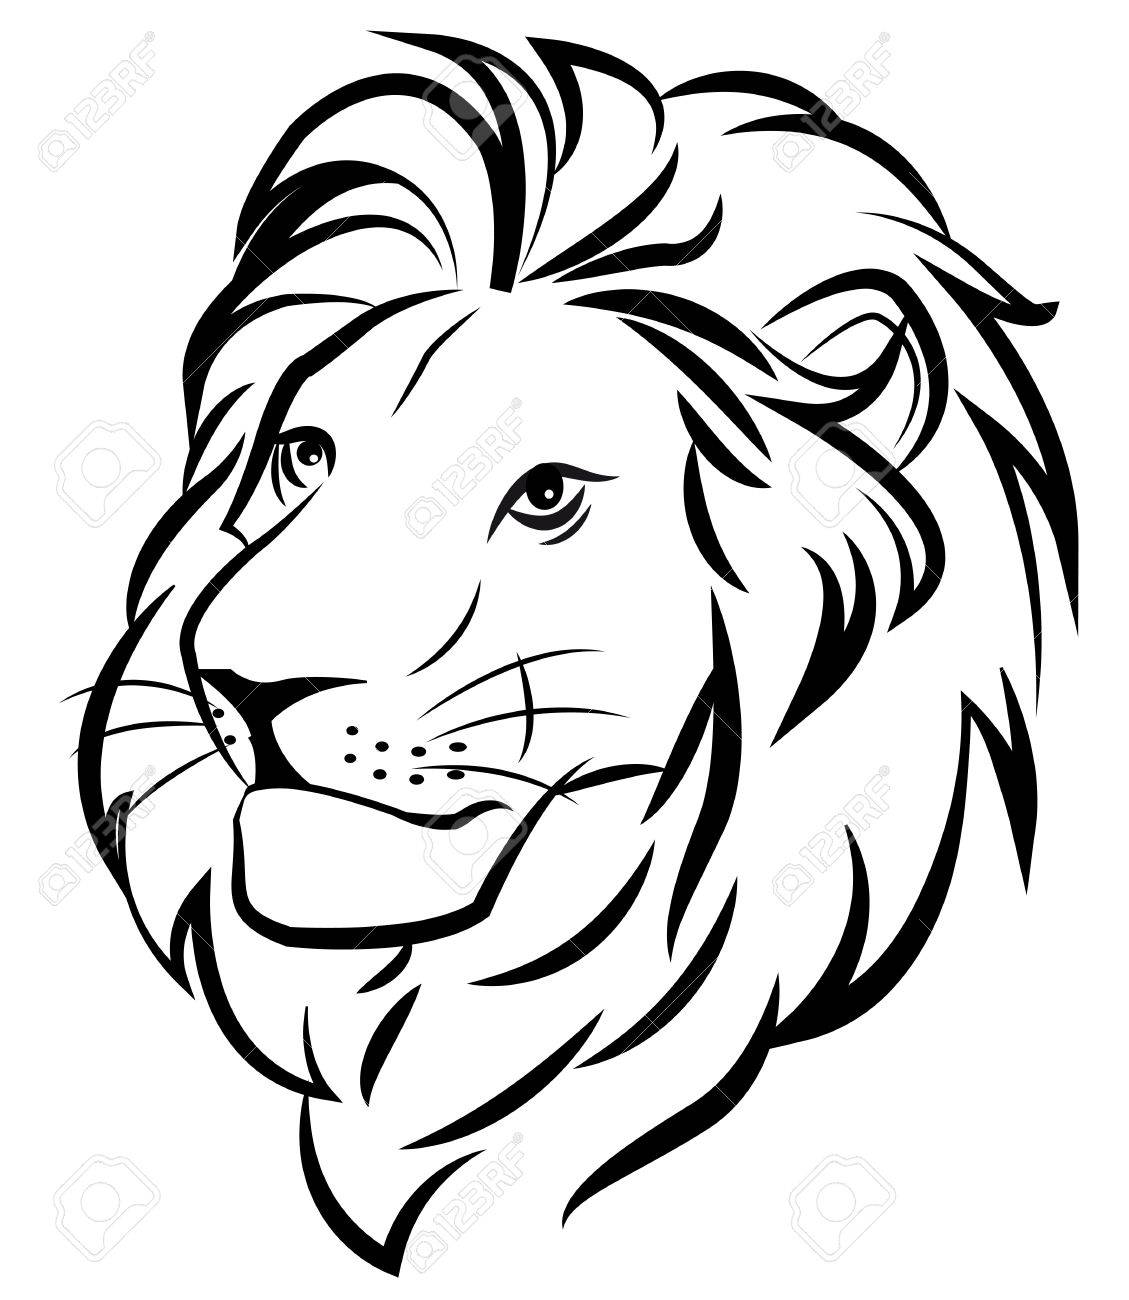 1129x1300 Lion Royalty Free Cliparts, Vectors, And Stock Illustration. Image